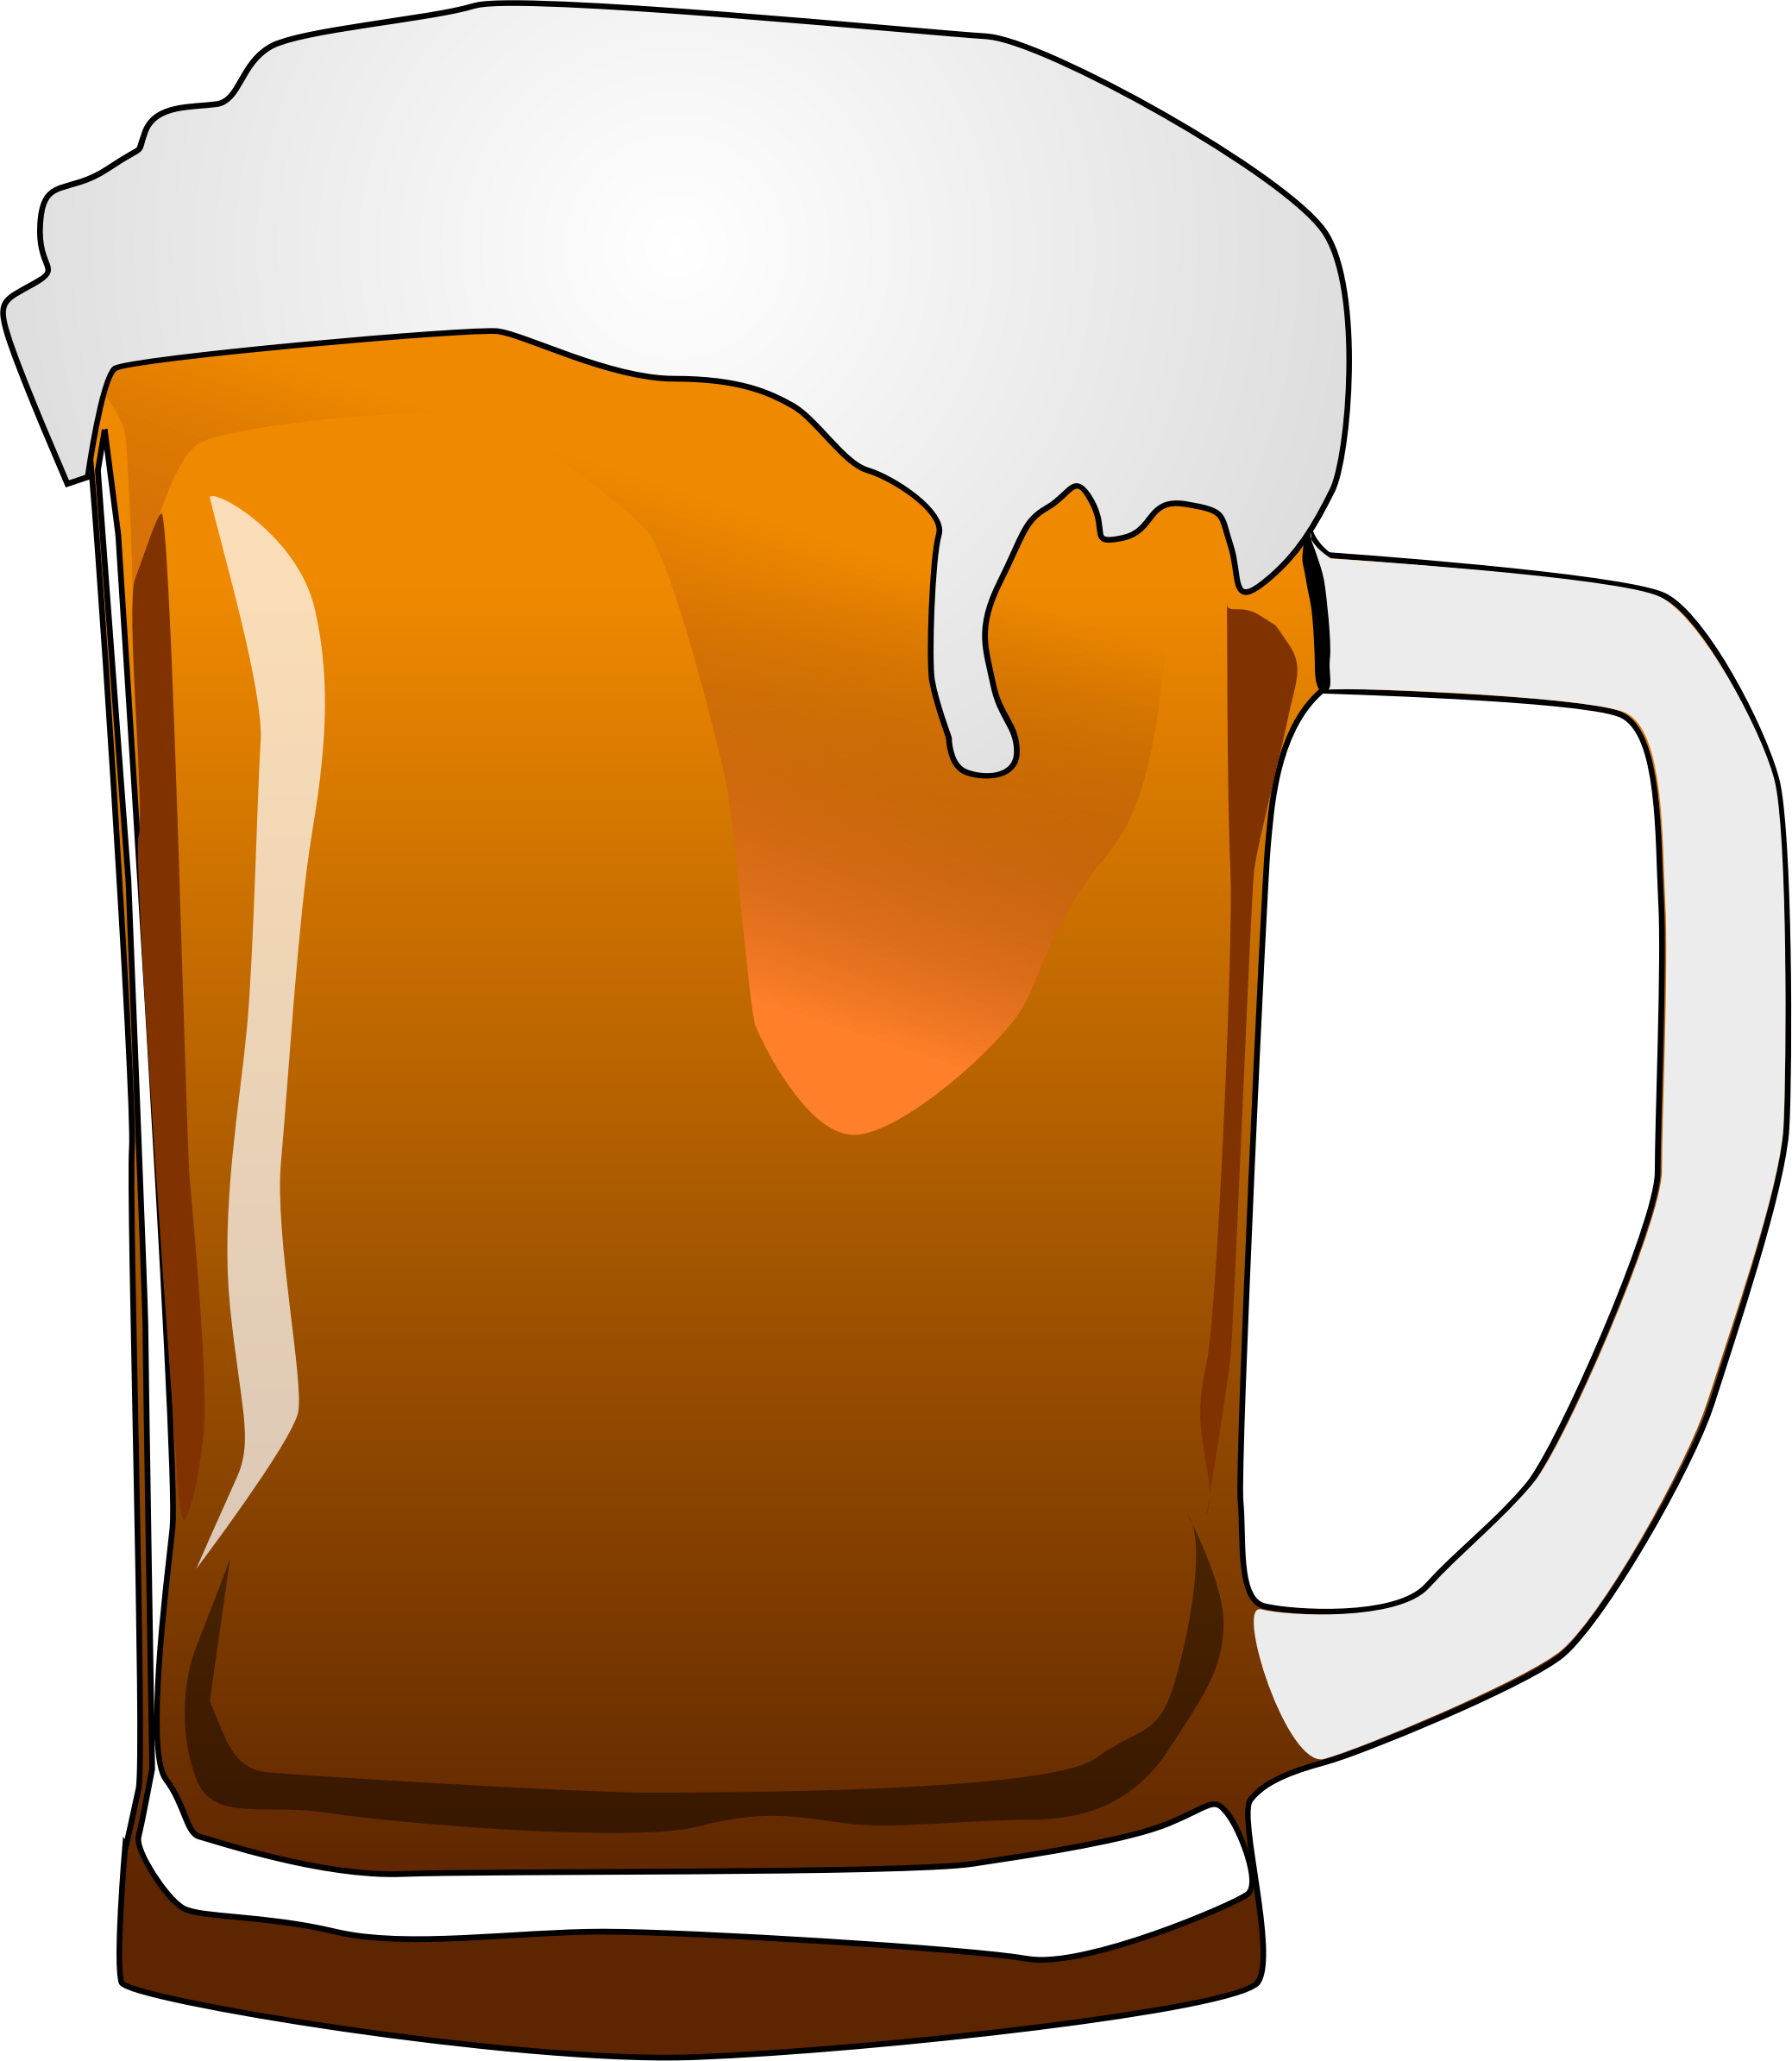 Glass clipart brown. Beer glasses lager clip